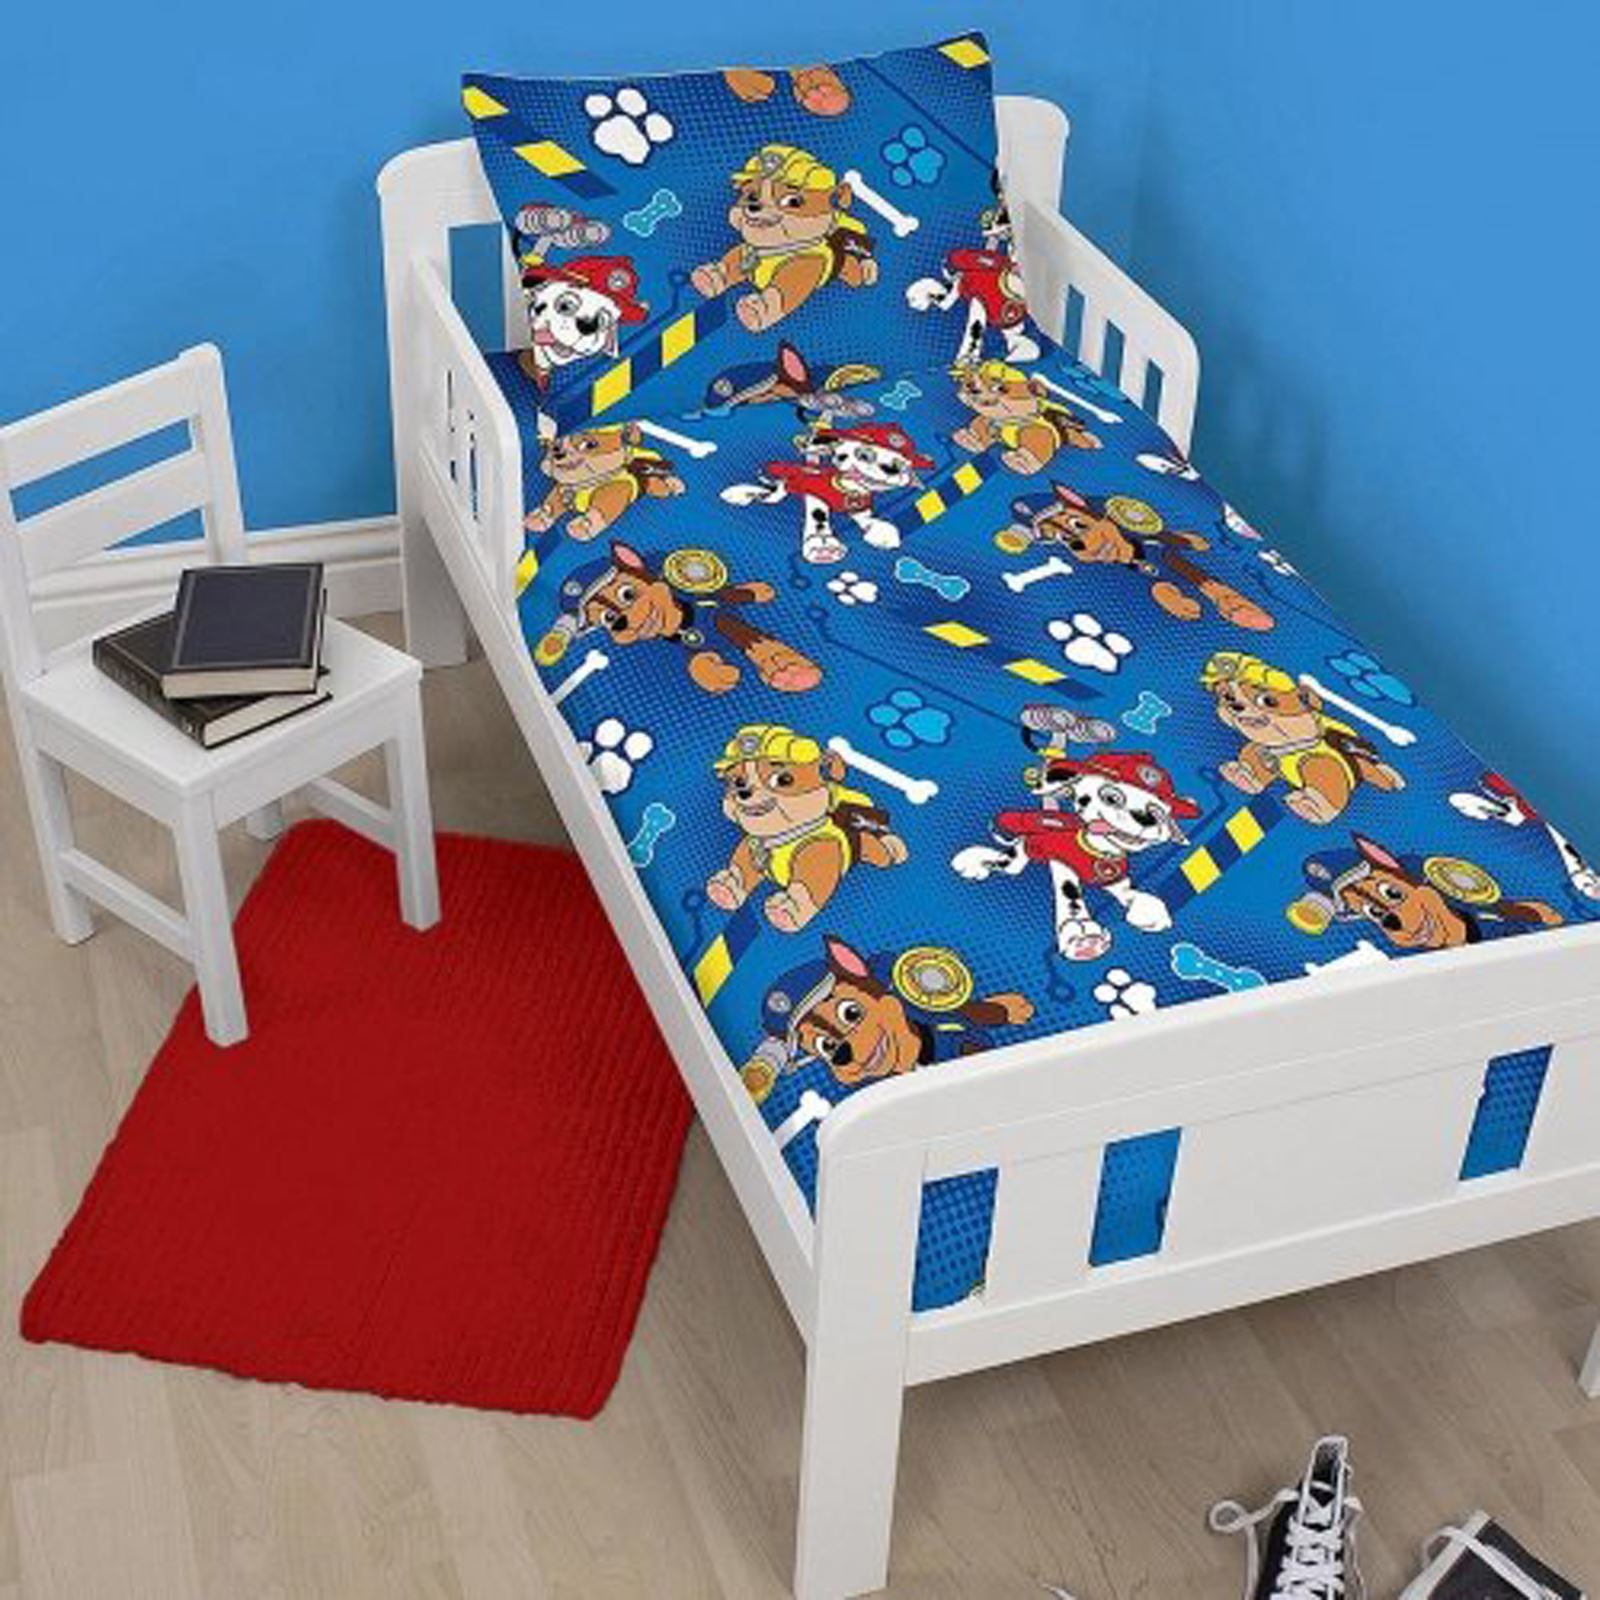 PAW PATROL OFFICIAL DUVET COVER SETS VARIOUS DESIGNS KIDS BEDROOM ...